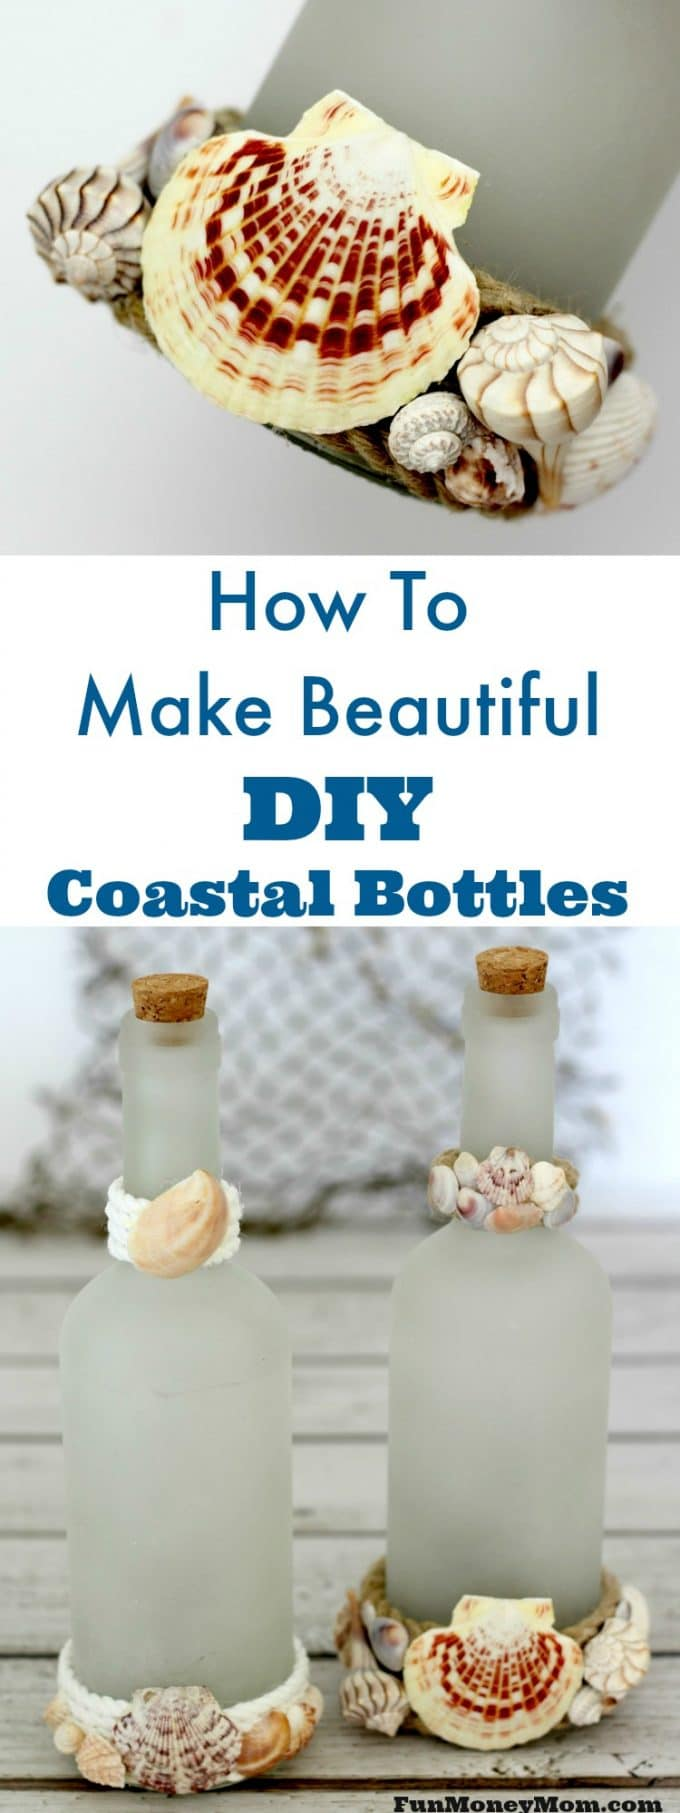 Do you love coastal decor? These beautiful DIY coastal bottles are easy to make. Just gather your seashells and start crafting!